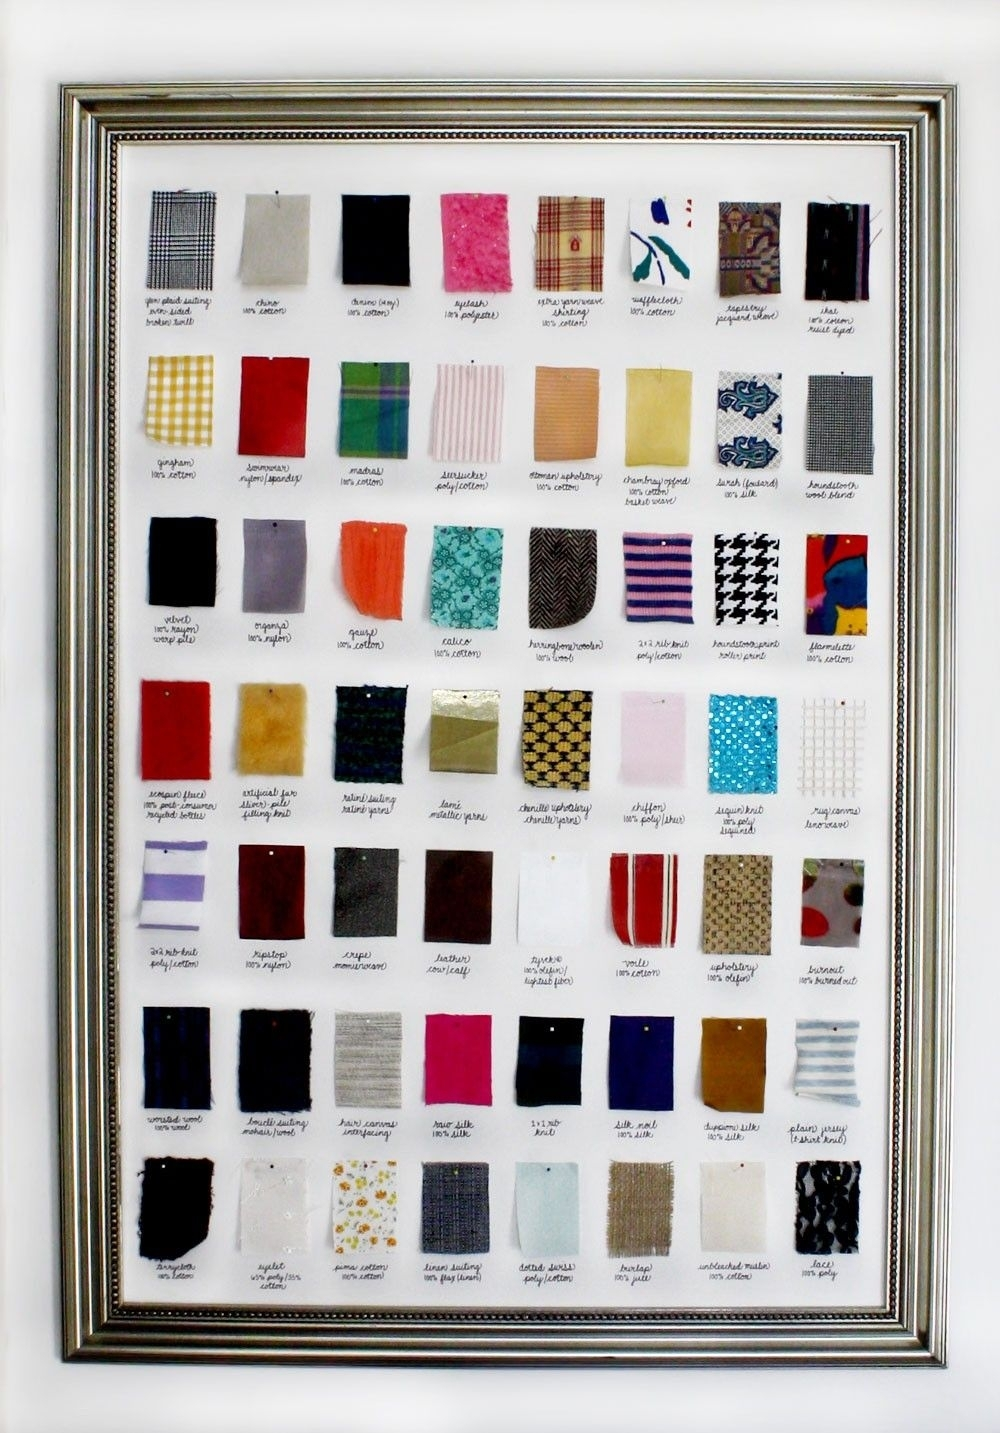 Swatch And Learn: Fashioning A Diy Fabric Library | Fabrics Regarding Most Up To Date Fabric Swatch Wall Art (View 3 of 15)